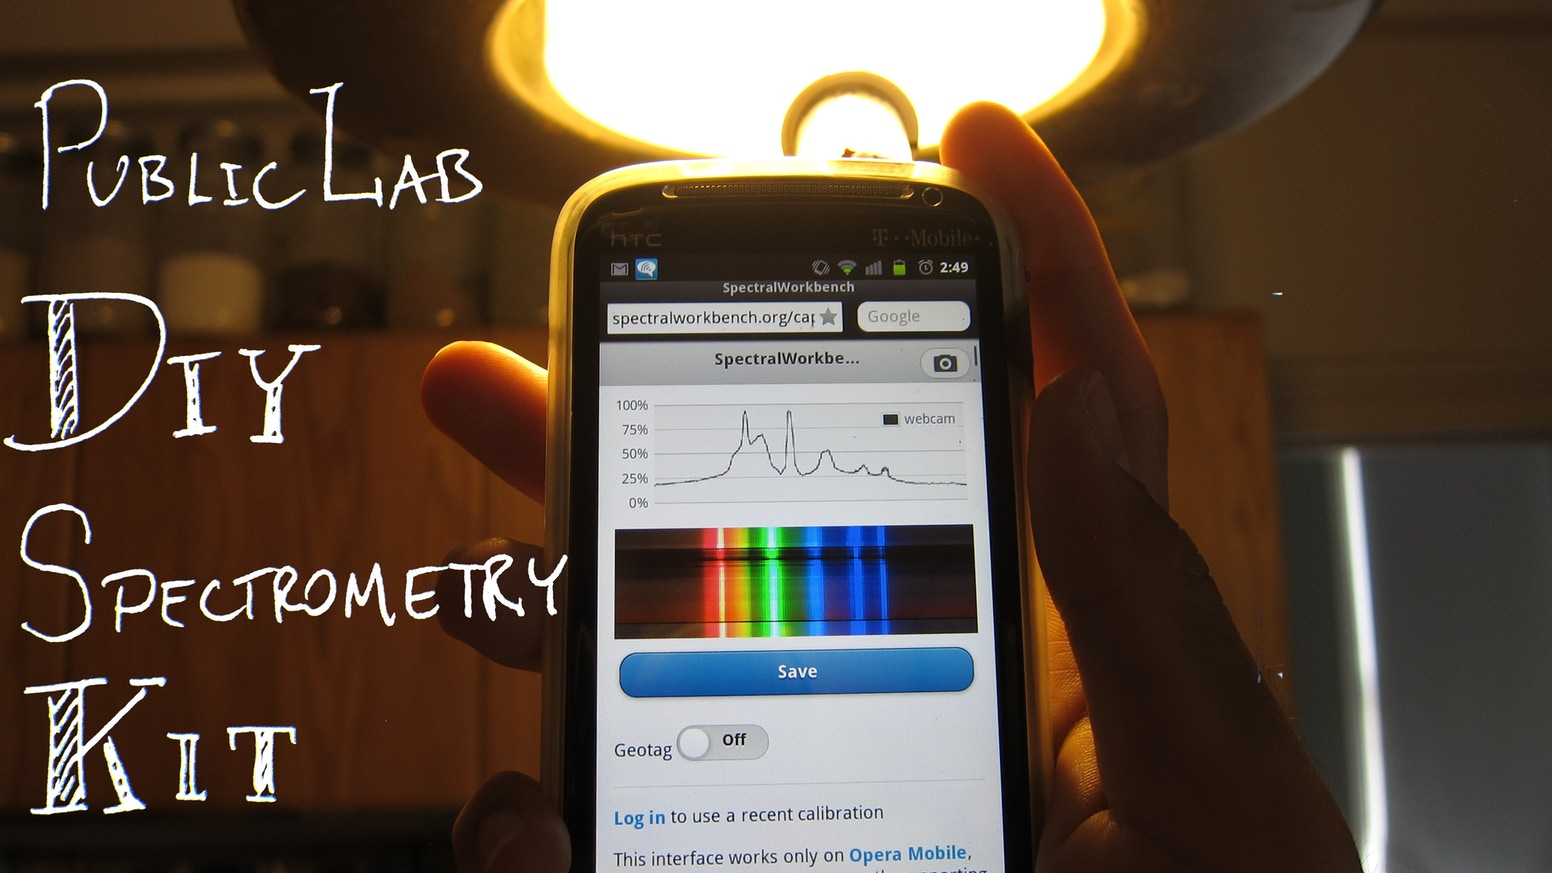 Public lab diy spectrometry kit by jeffrey yoo warren kickstarter this diy kit helps analyze materials and contaminants we need your help to build a solutioingenieria Gallery